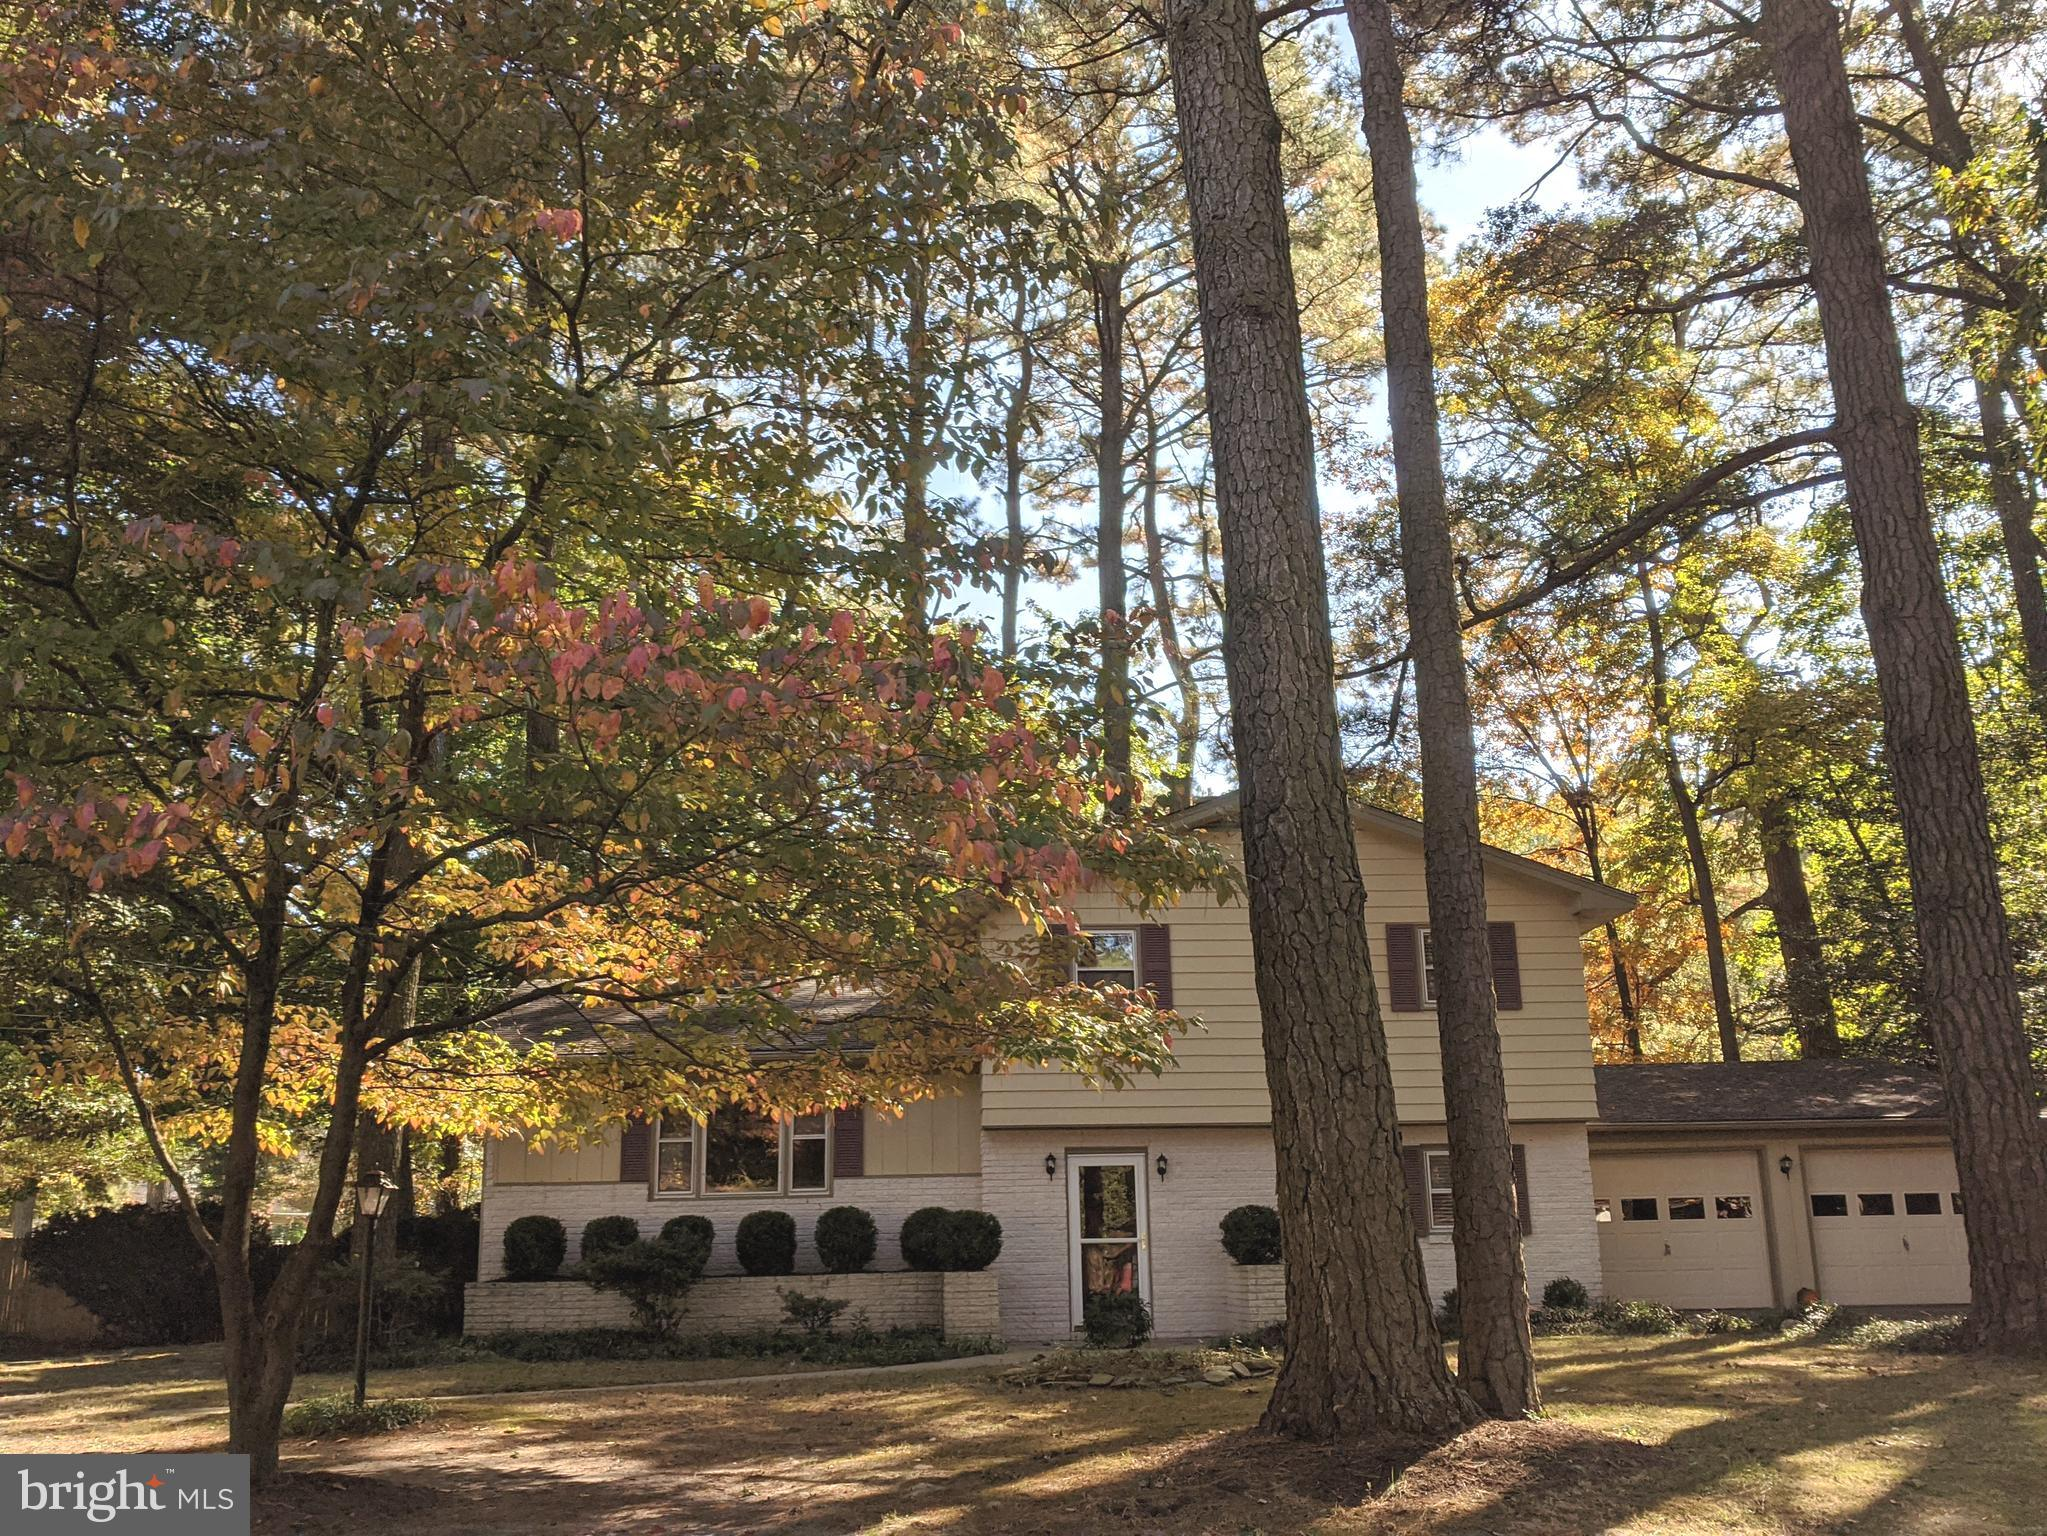 Well maintained home located in an established neighborhood known as Deer's Head.  Interior features